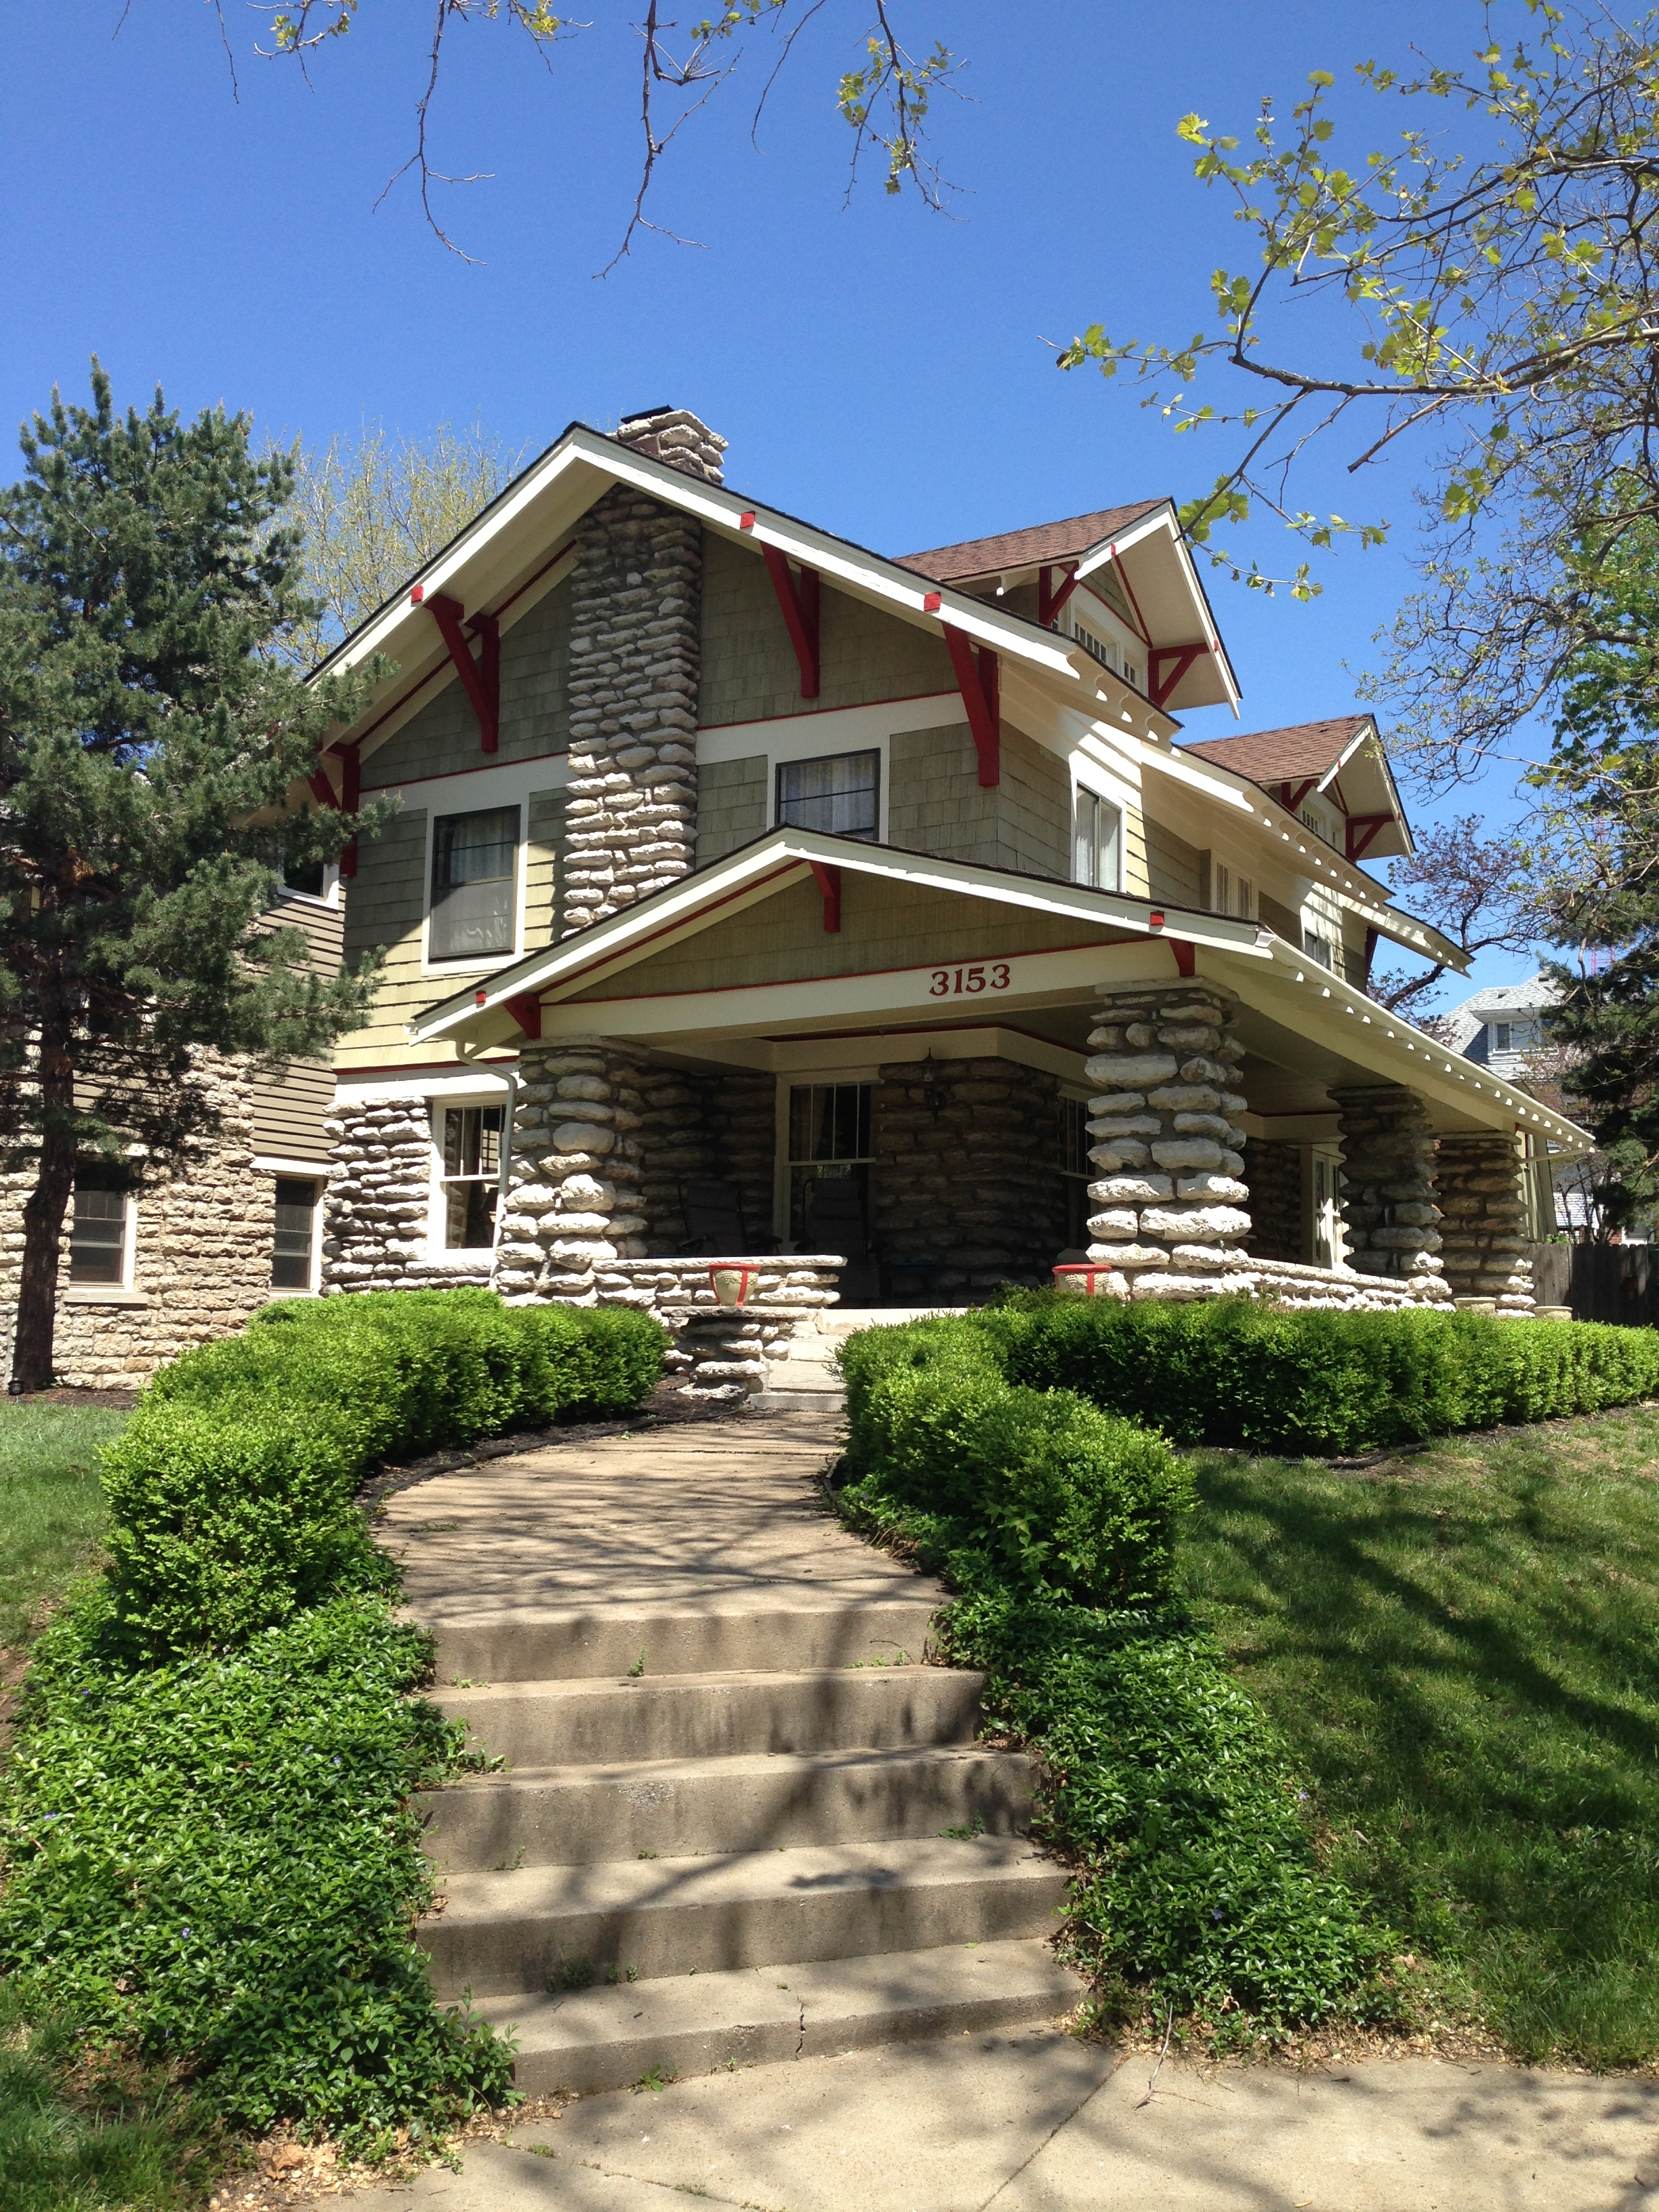 a stone house from the '50's gets repainted